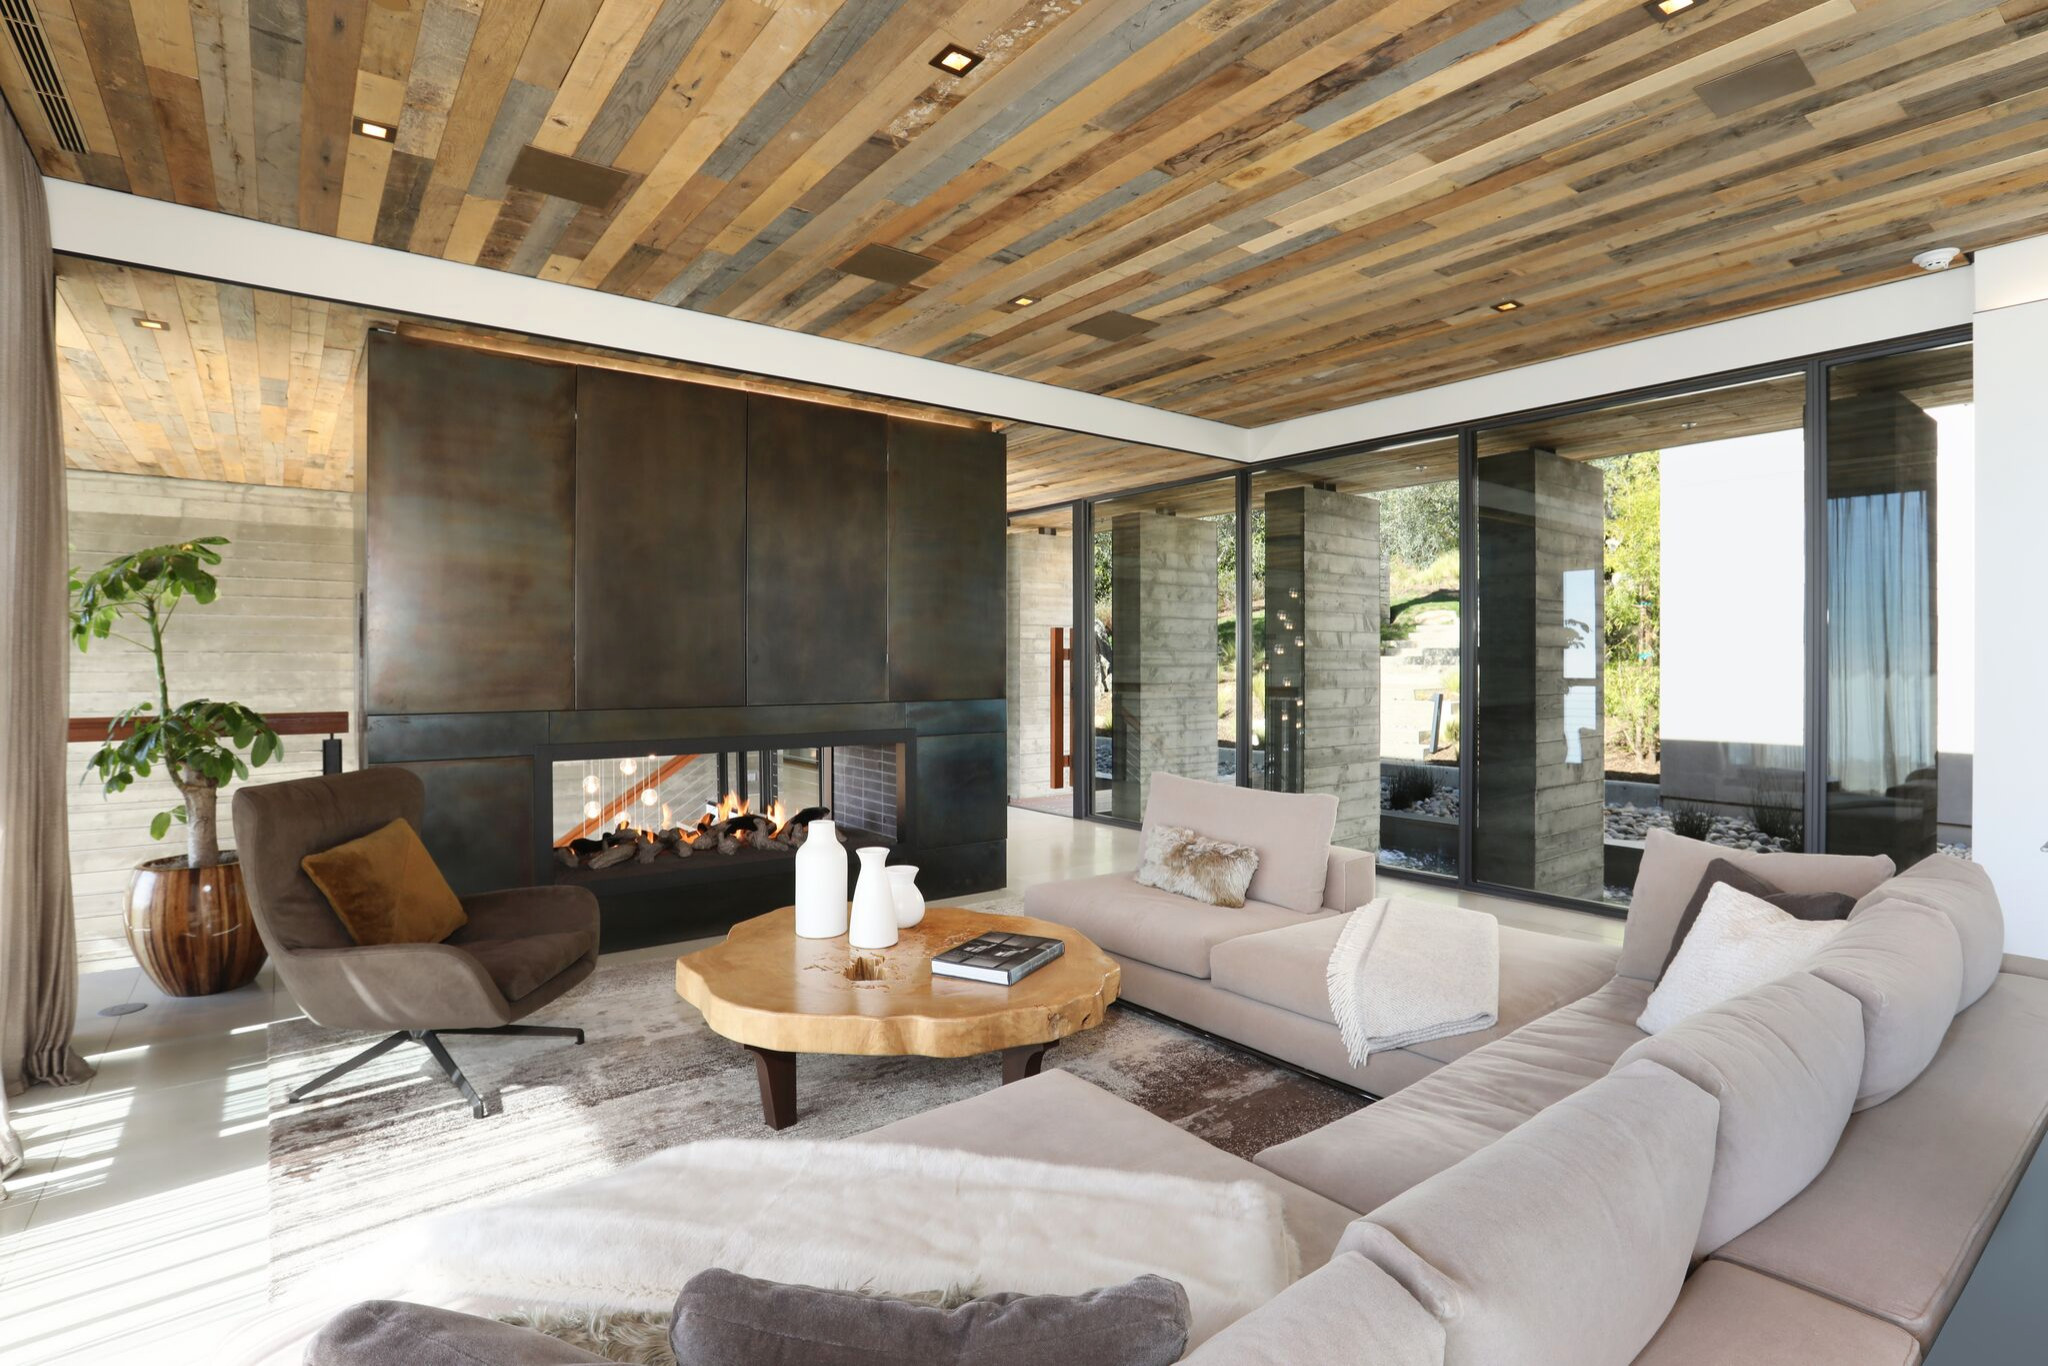 75 Beautiful Living Room With A Media Wall Pictures Ideas December 2020 Houzz